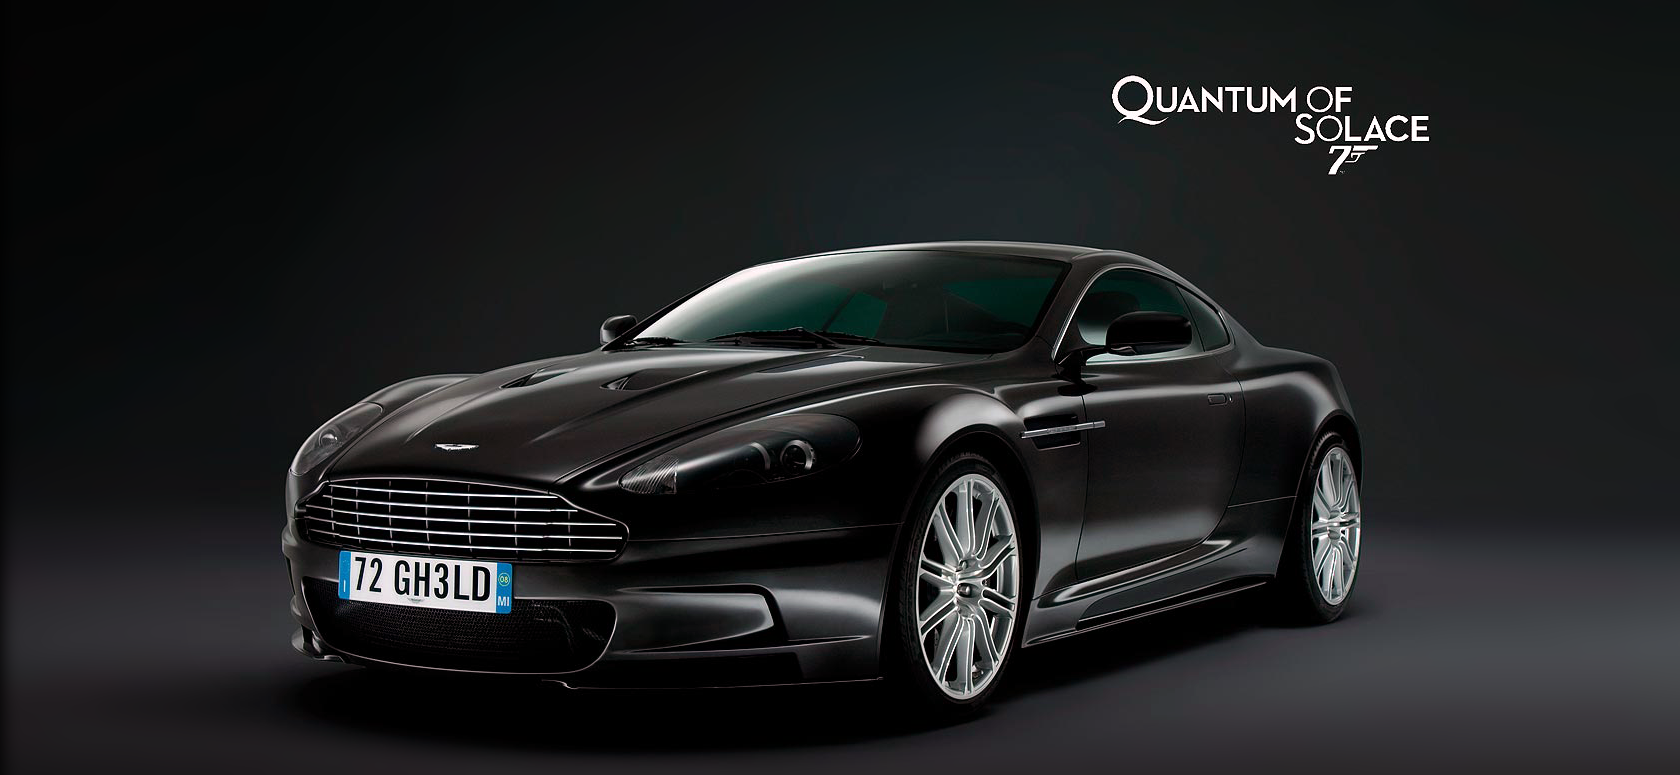 james bond's aston martin, visceral, emotional design